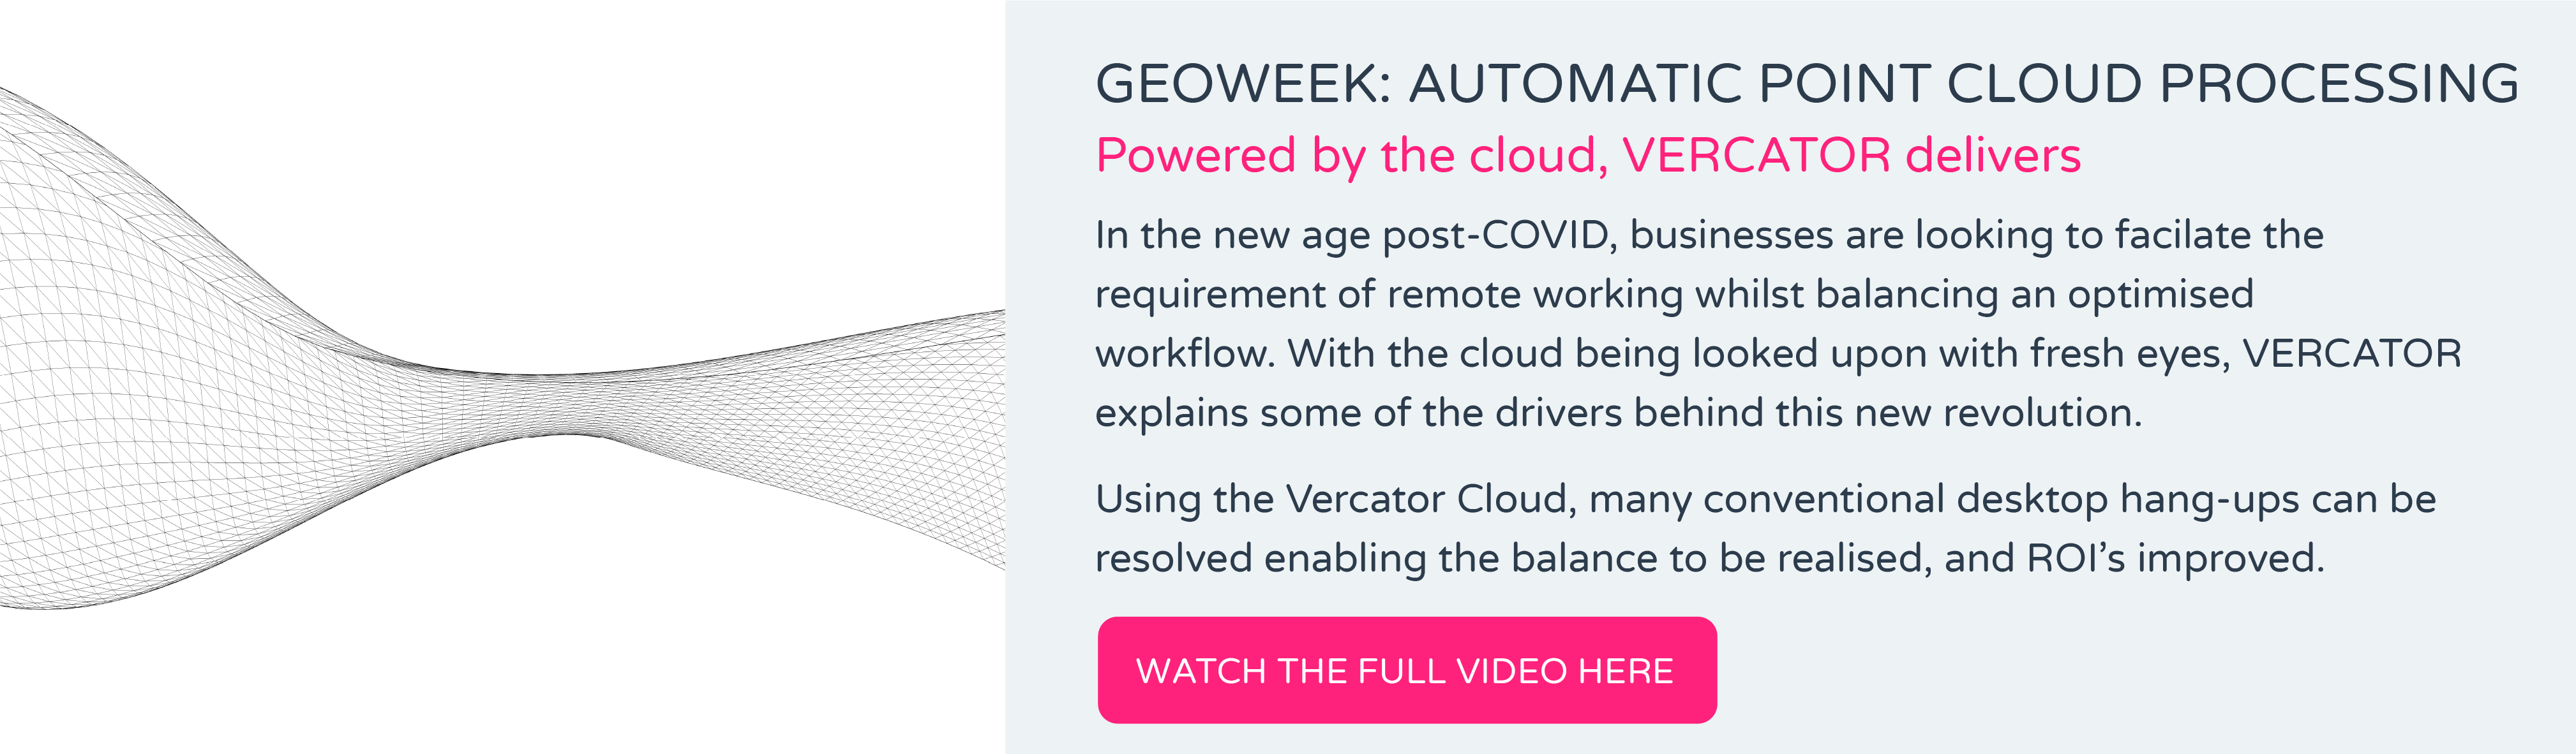 GEOWEEK: AUTOMATIC POINT CLOUD PROCESSING